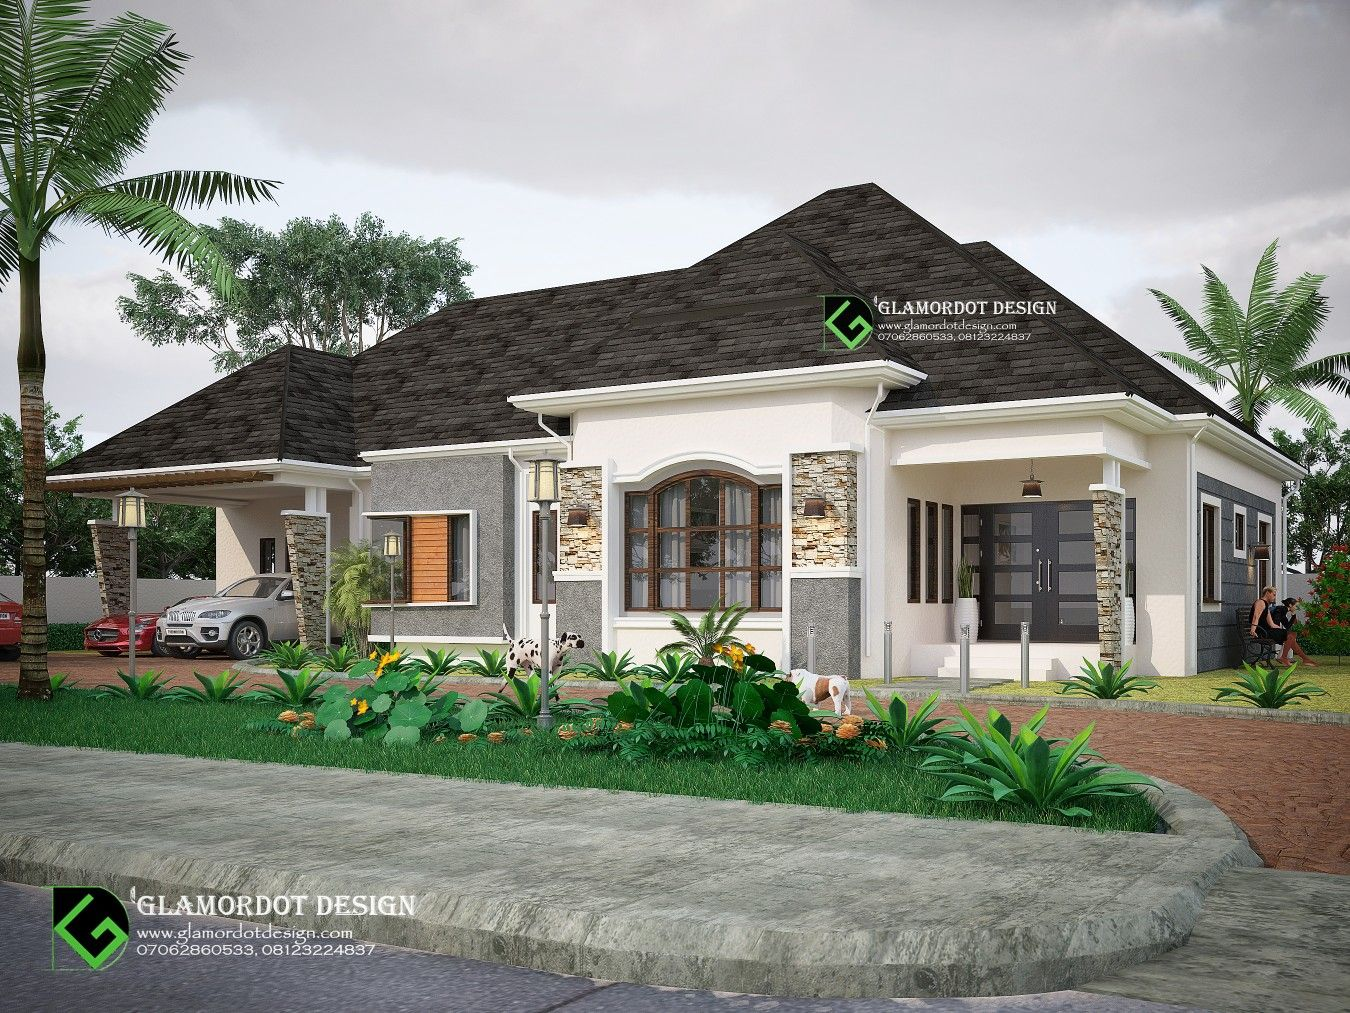 Bungalow Design Ideas 4 Bedroom Bungalow Design With A 2 Car Garage Attached For